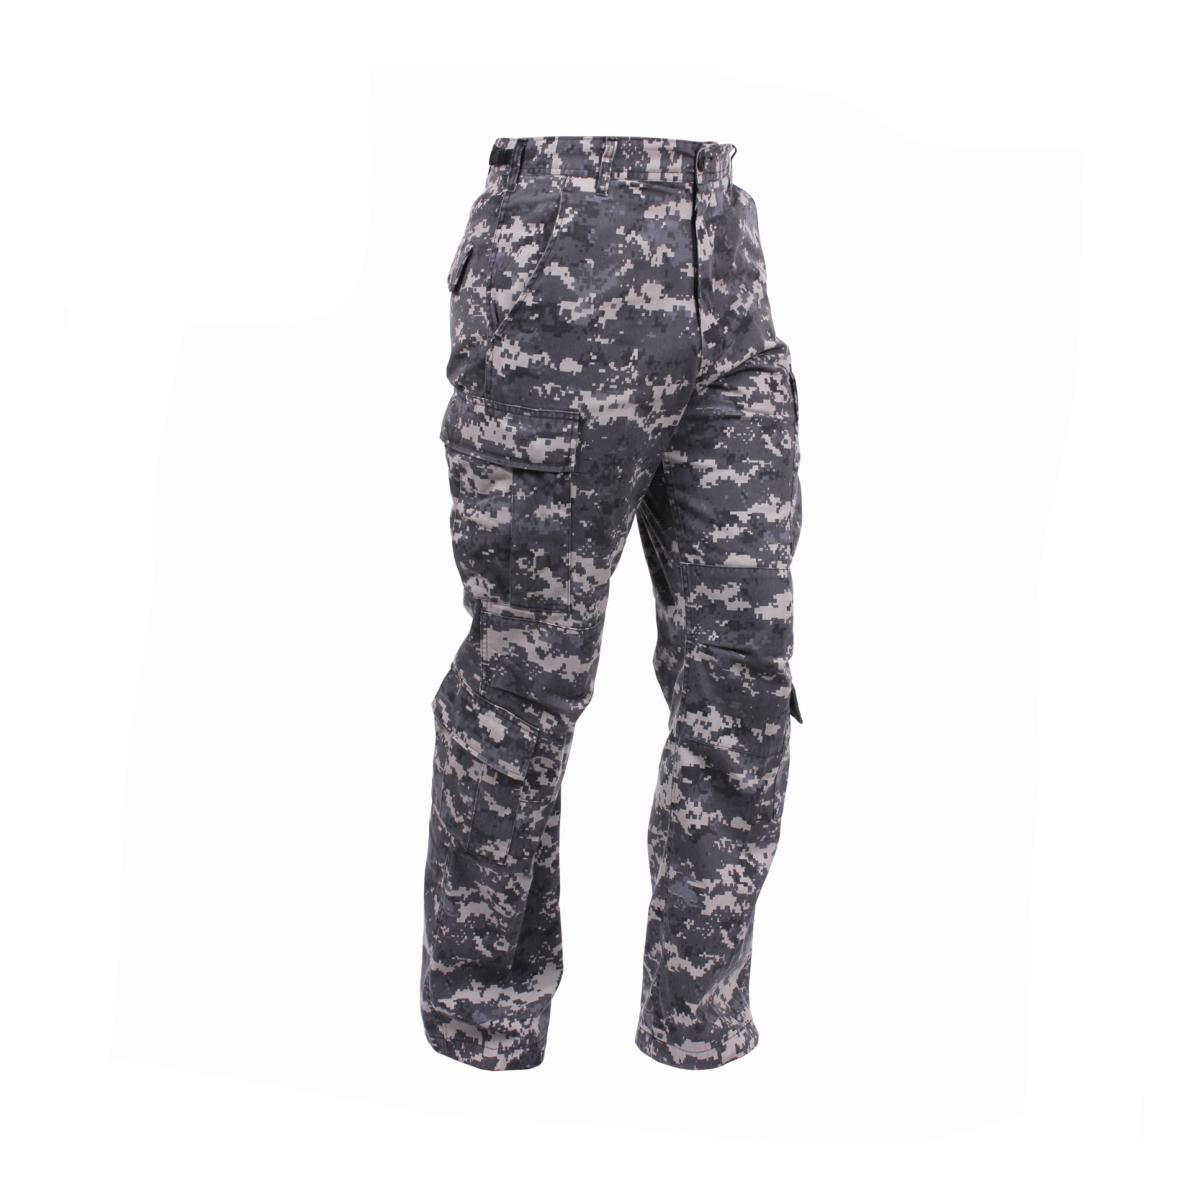 Click here to buy Rothco Vintage Camo Paratrooper Fatigue Pants, Subdued Urban Digital Camo by Rothco.